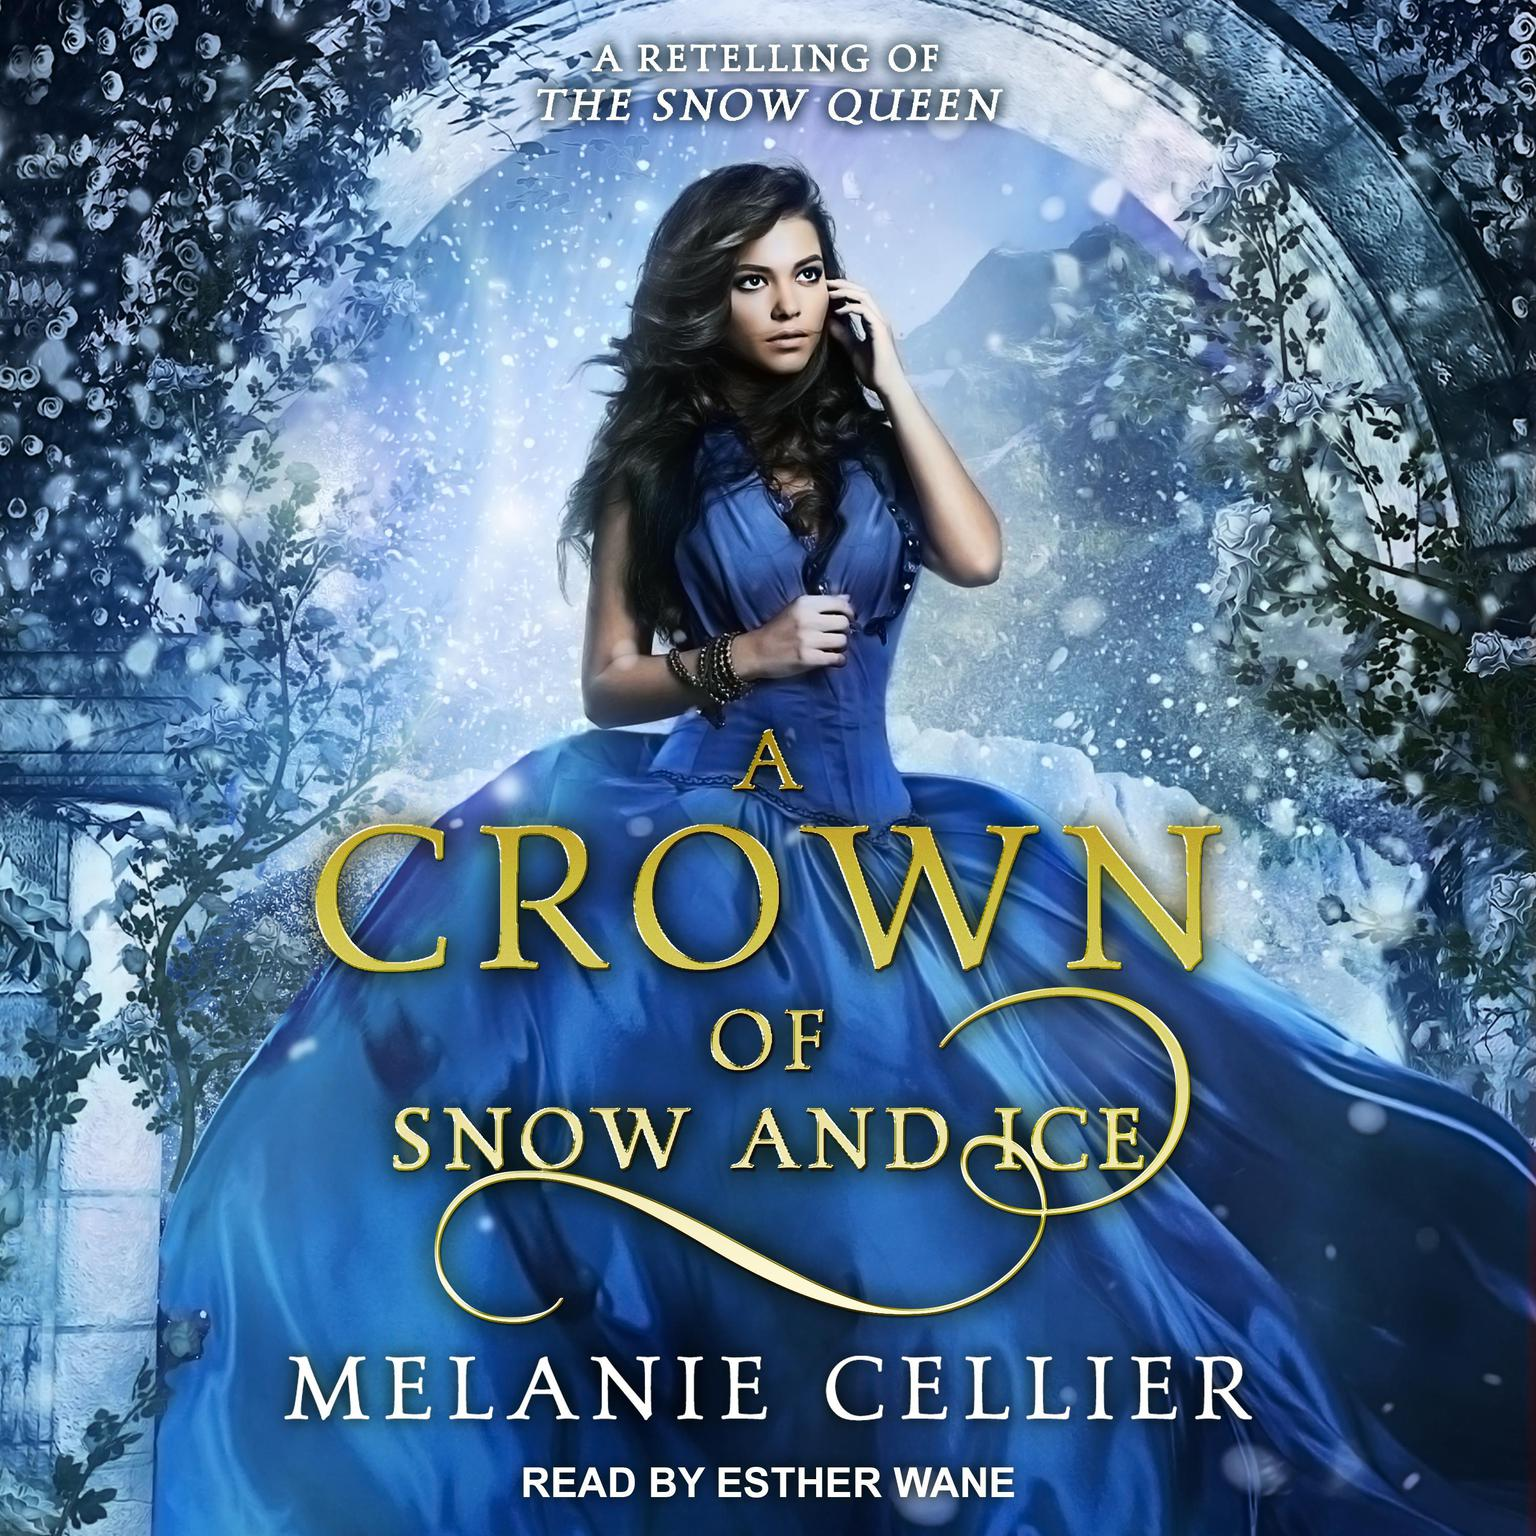 Printable A Crown of Snow and Ice: A Retelling of The Snow Queen Audiobook Cover Art